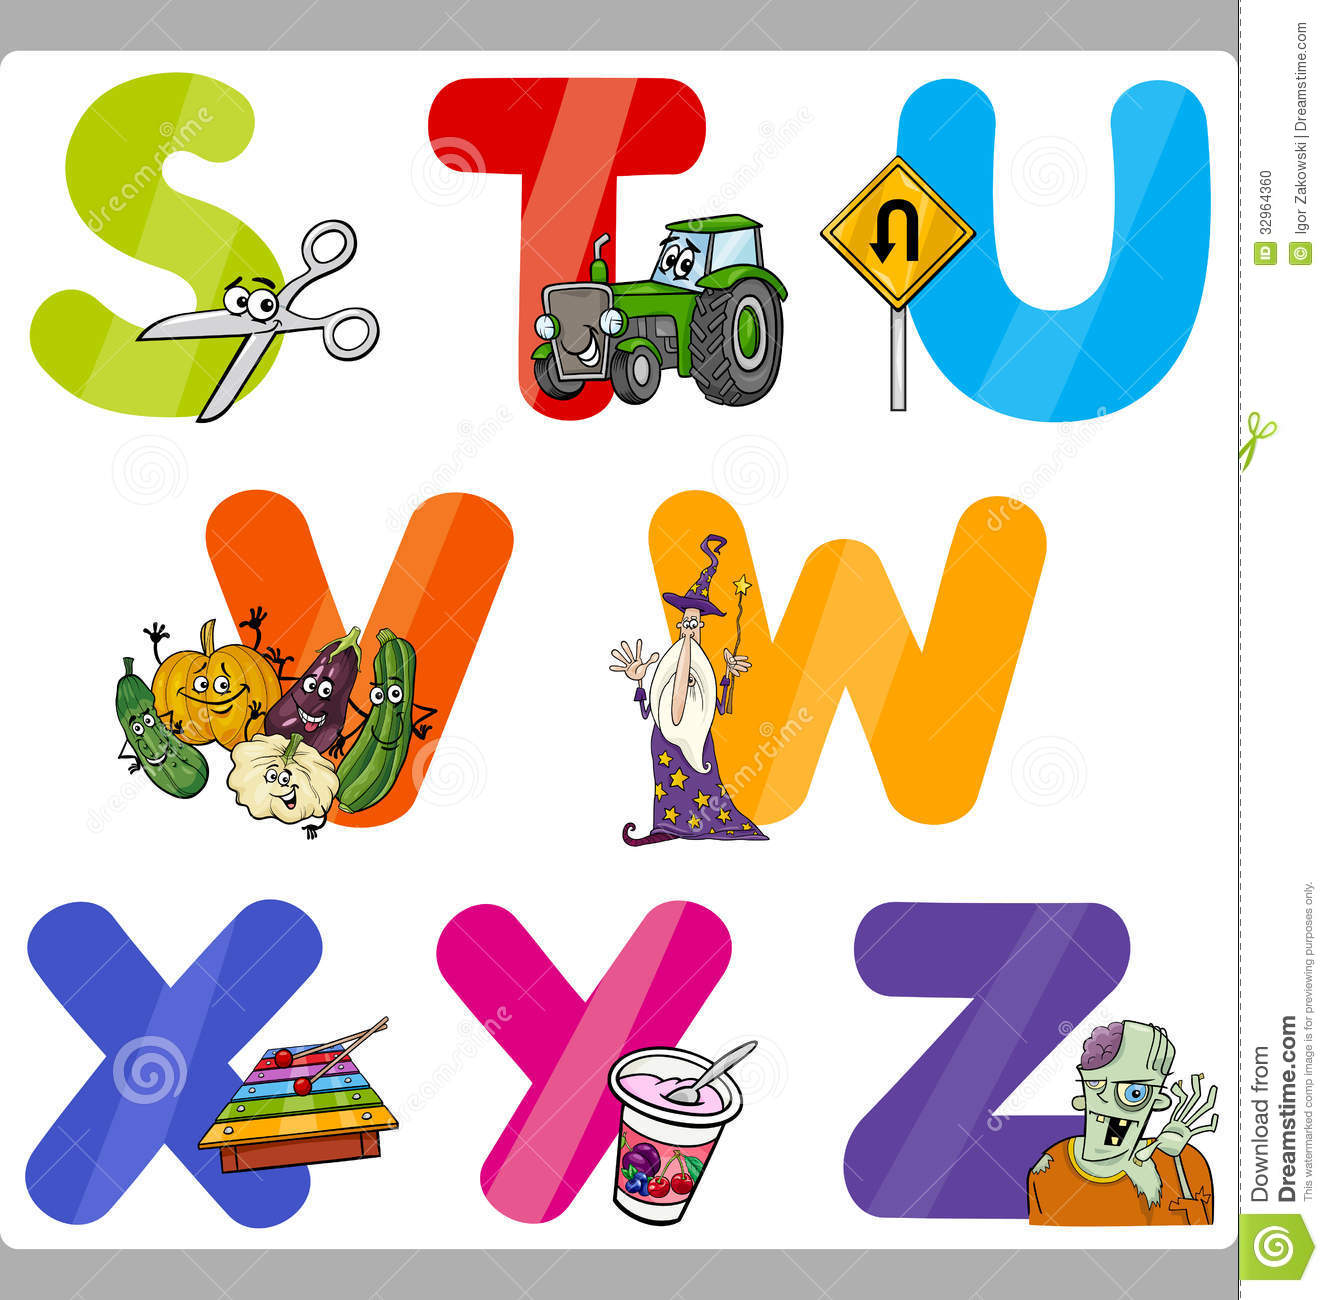 Letters for kids clipart clipart free Education Cartoon Alphabet Letters For Kids Stock Photo - Image ... clipart free